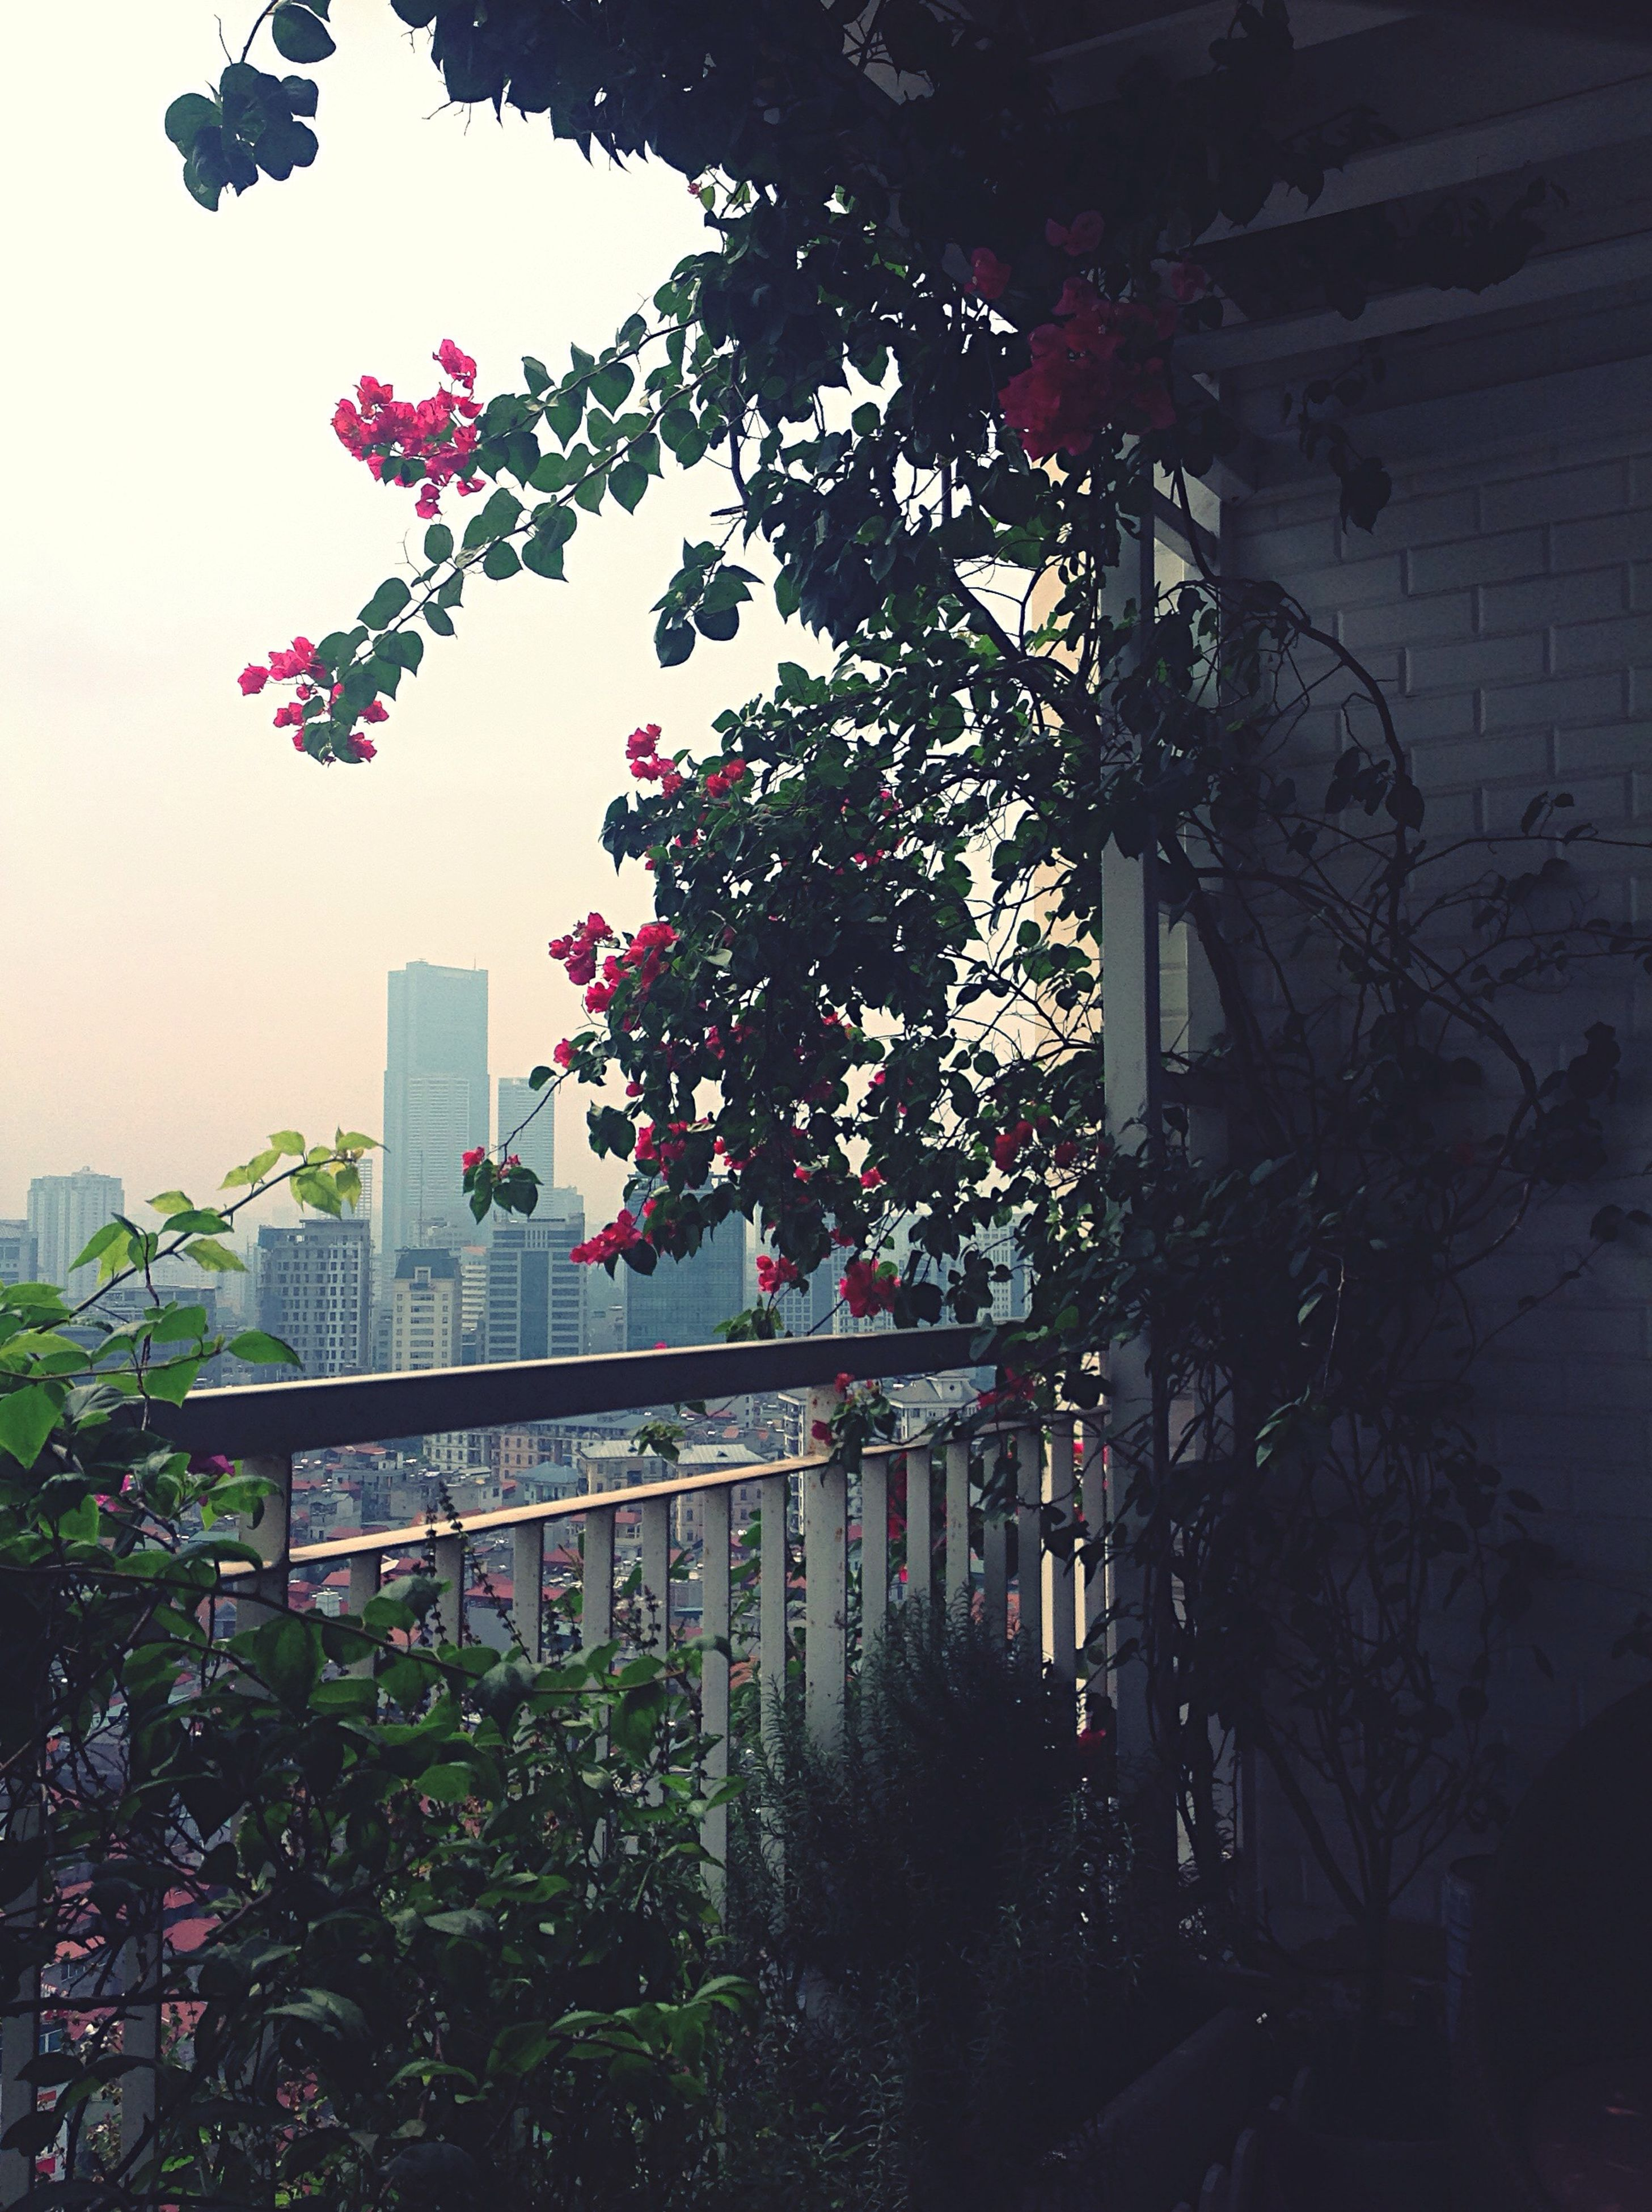 tree, growth, built structure, architecture, plant, building exterior, branch, flower, city, water, growing, sky, freshness, nature, skyscraper, day, springtime, fragility, no people, in bloom, tranquility, pink color